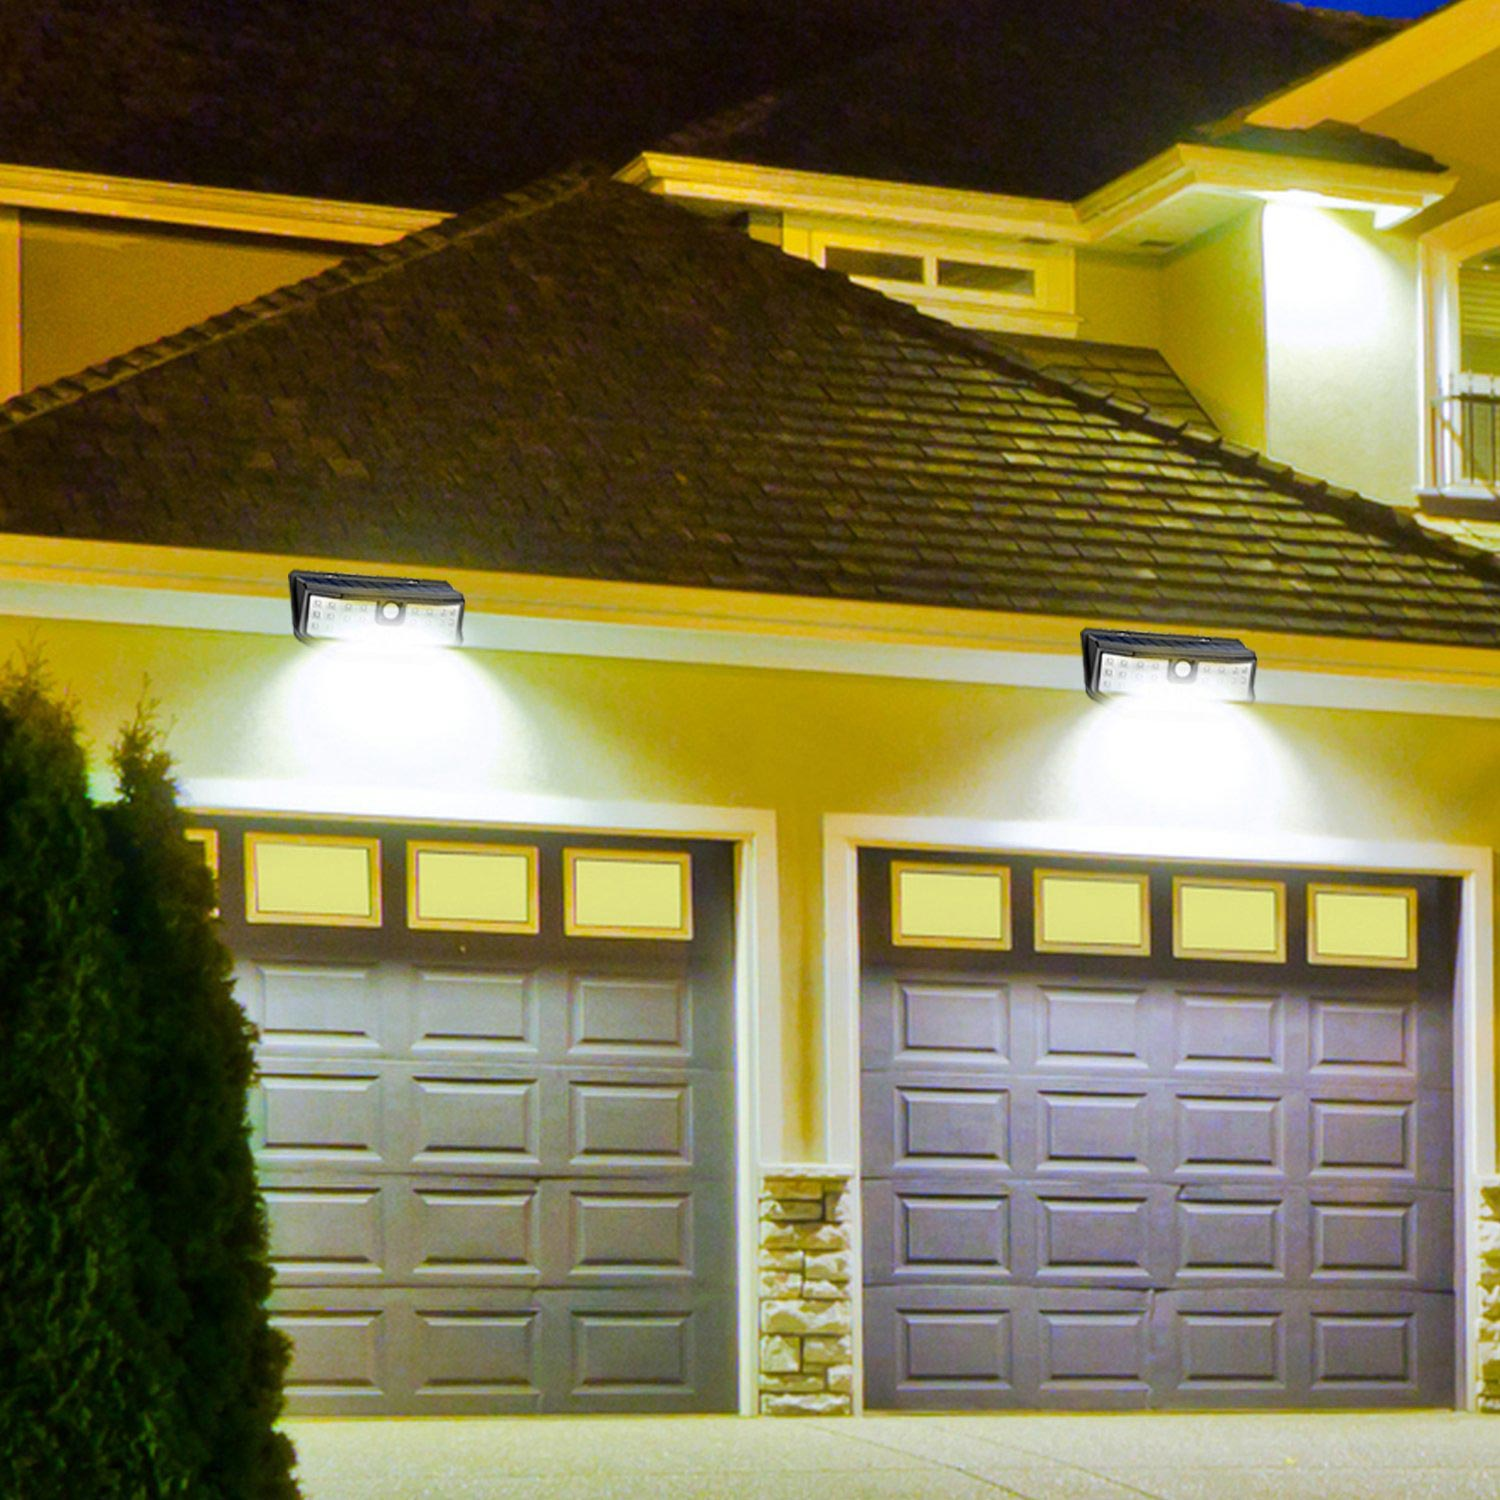 Motion-activated lights outside of a house.